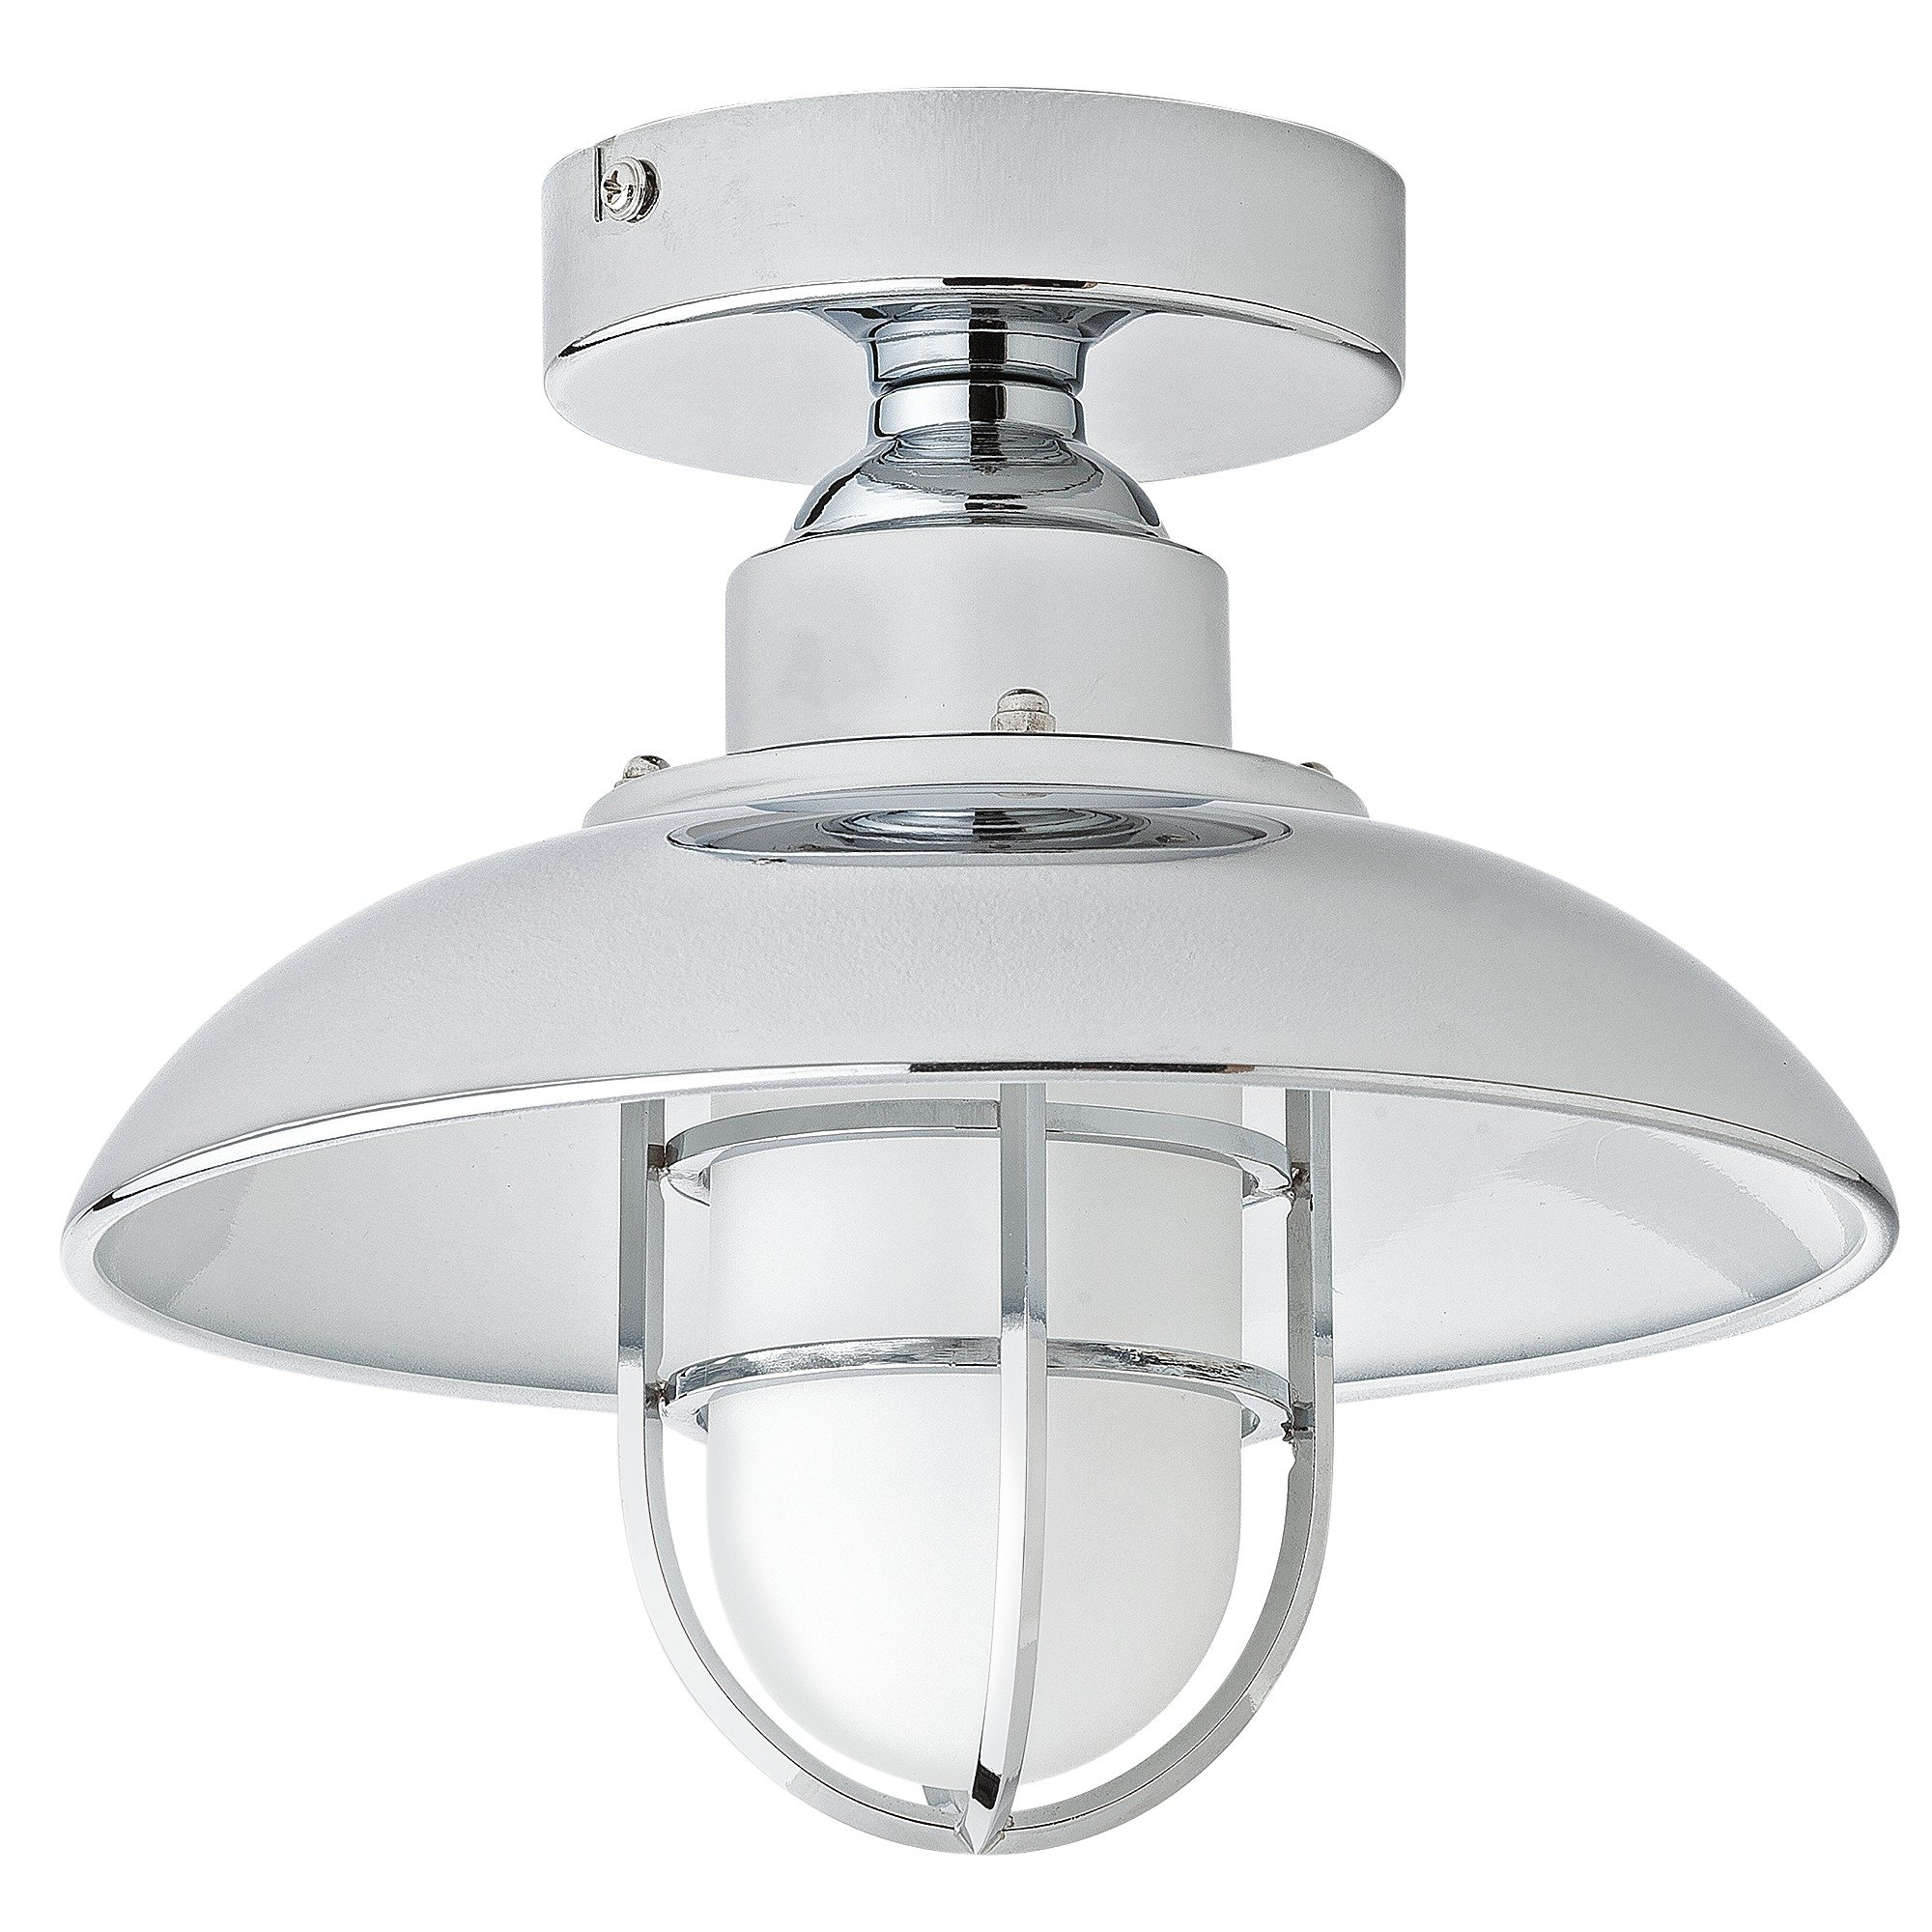 bathroom wall lighting uk buy collection kildare fisherman lantern bathroom light 17122